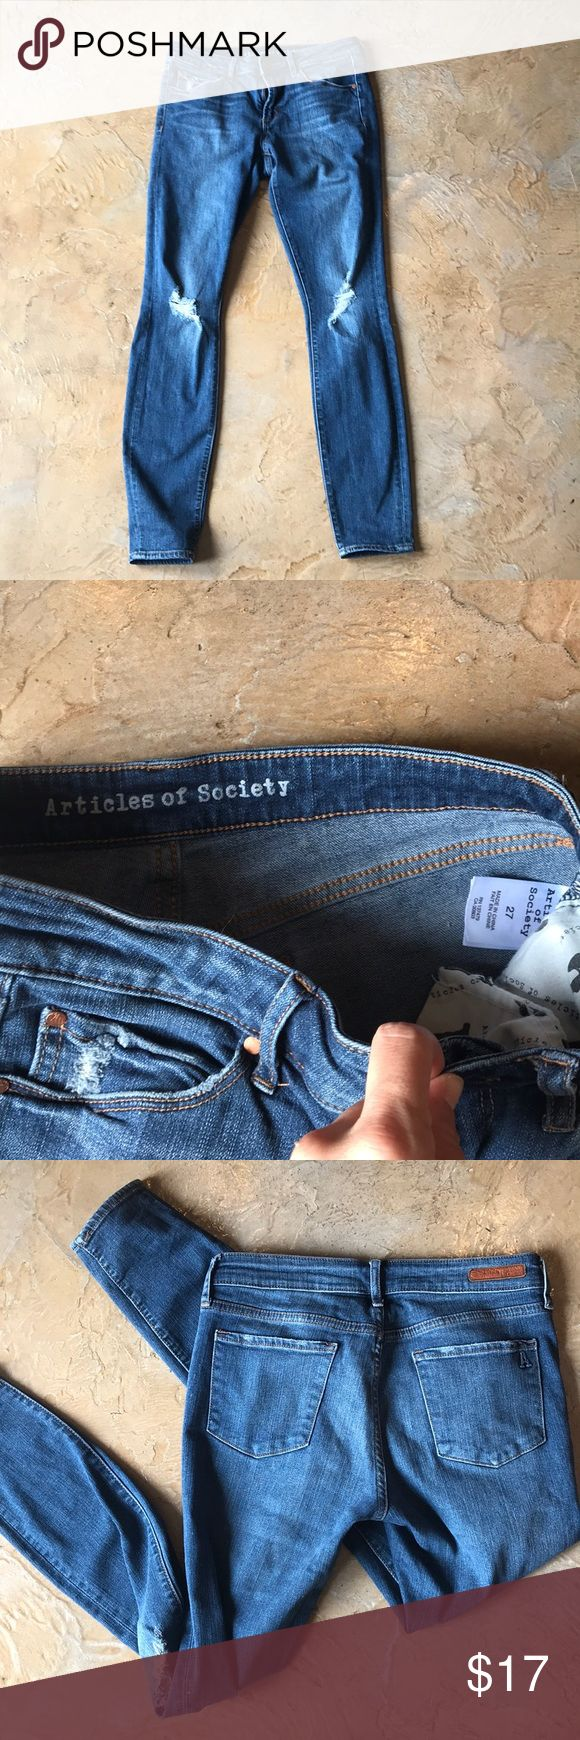 Women's Article of Society Jean size 27 Worn once, jeans have alittle stretch, very comfortable. Articles Of Society Jeans Skinny